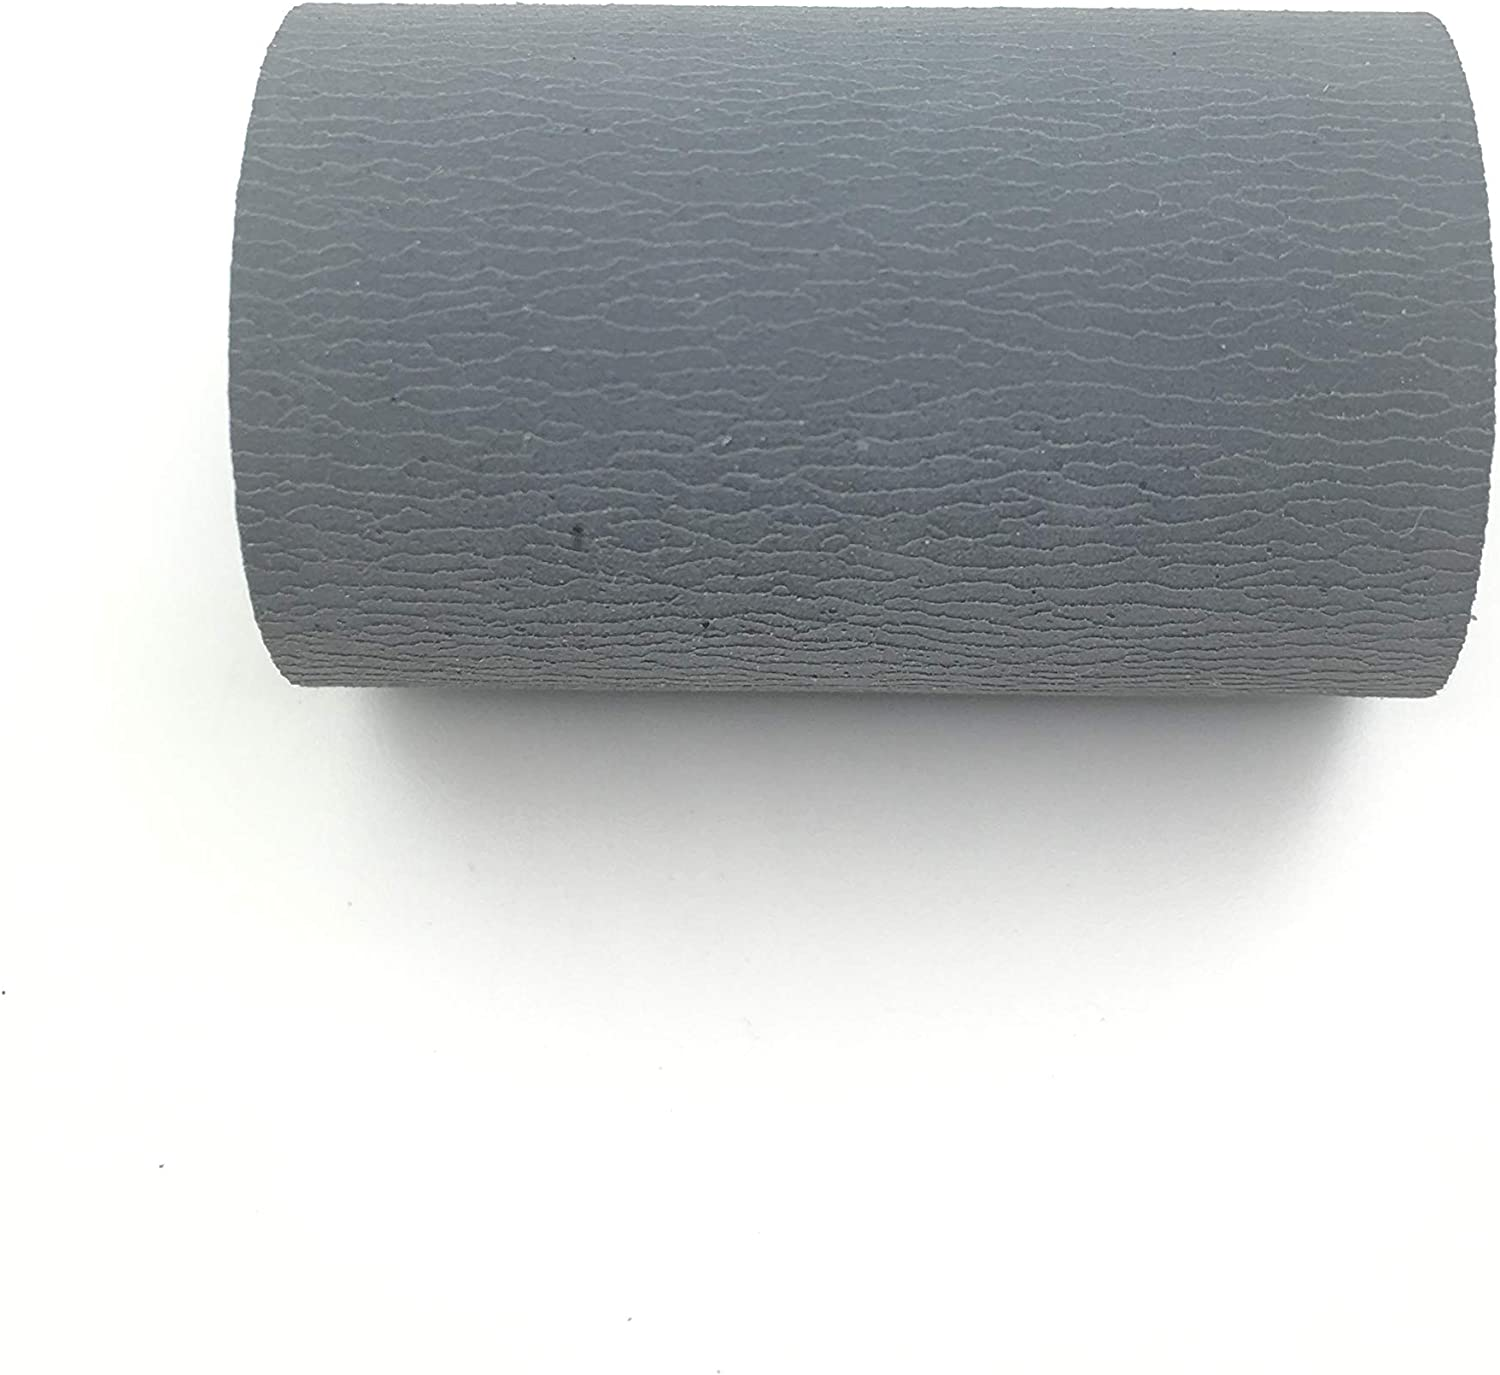 LD6999001 LD0633001 for Brother ADS1000 ADS1500 Pick Roller and Separation Pad